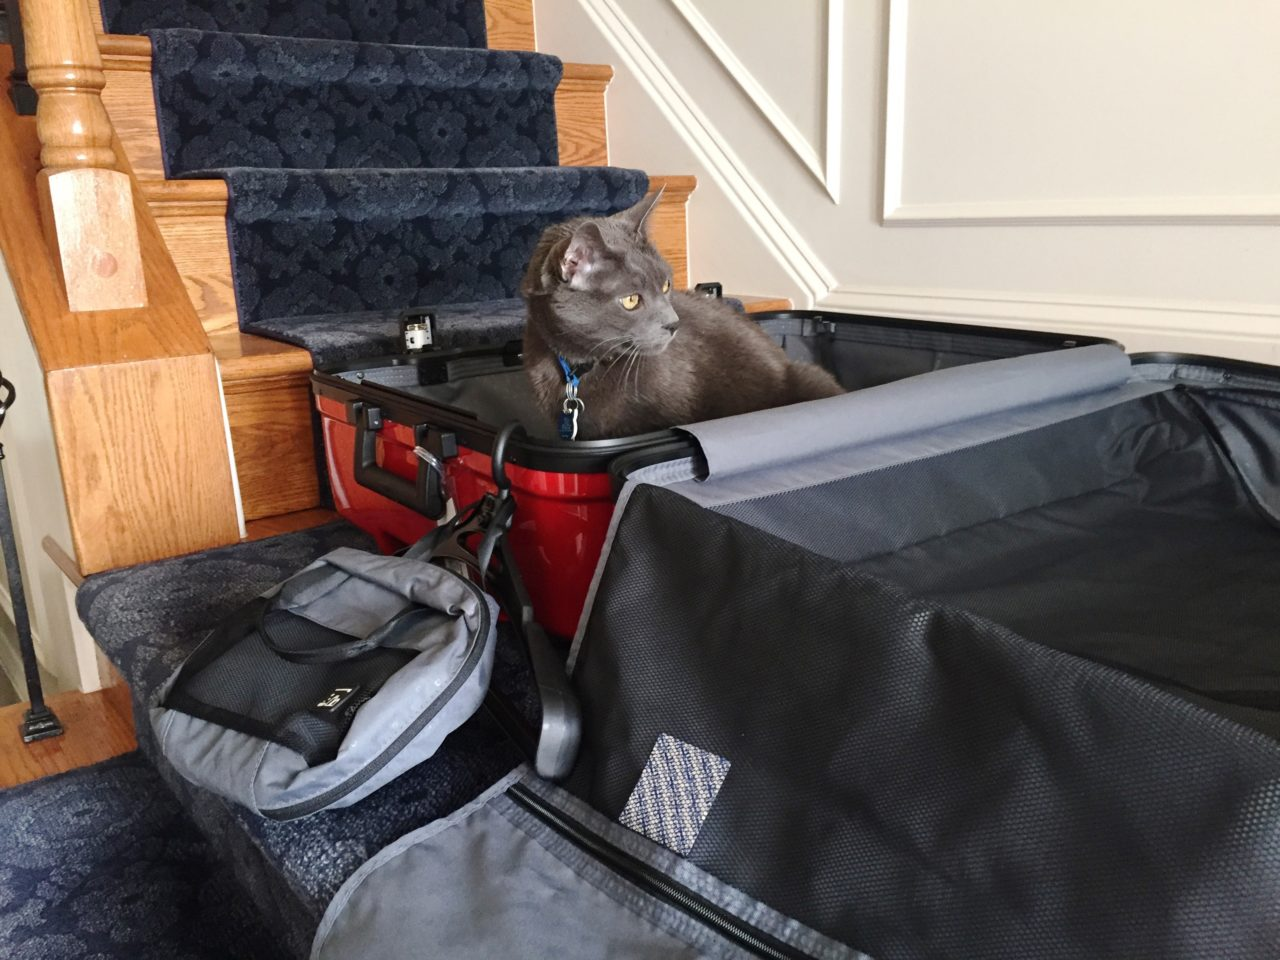 Lojel Luggage ~ Everyone loves the inside layout and accessories of the Novigo suitcase